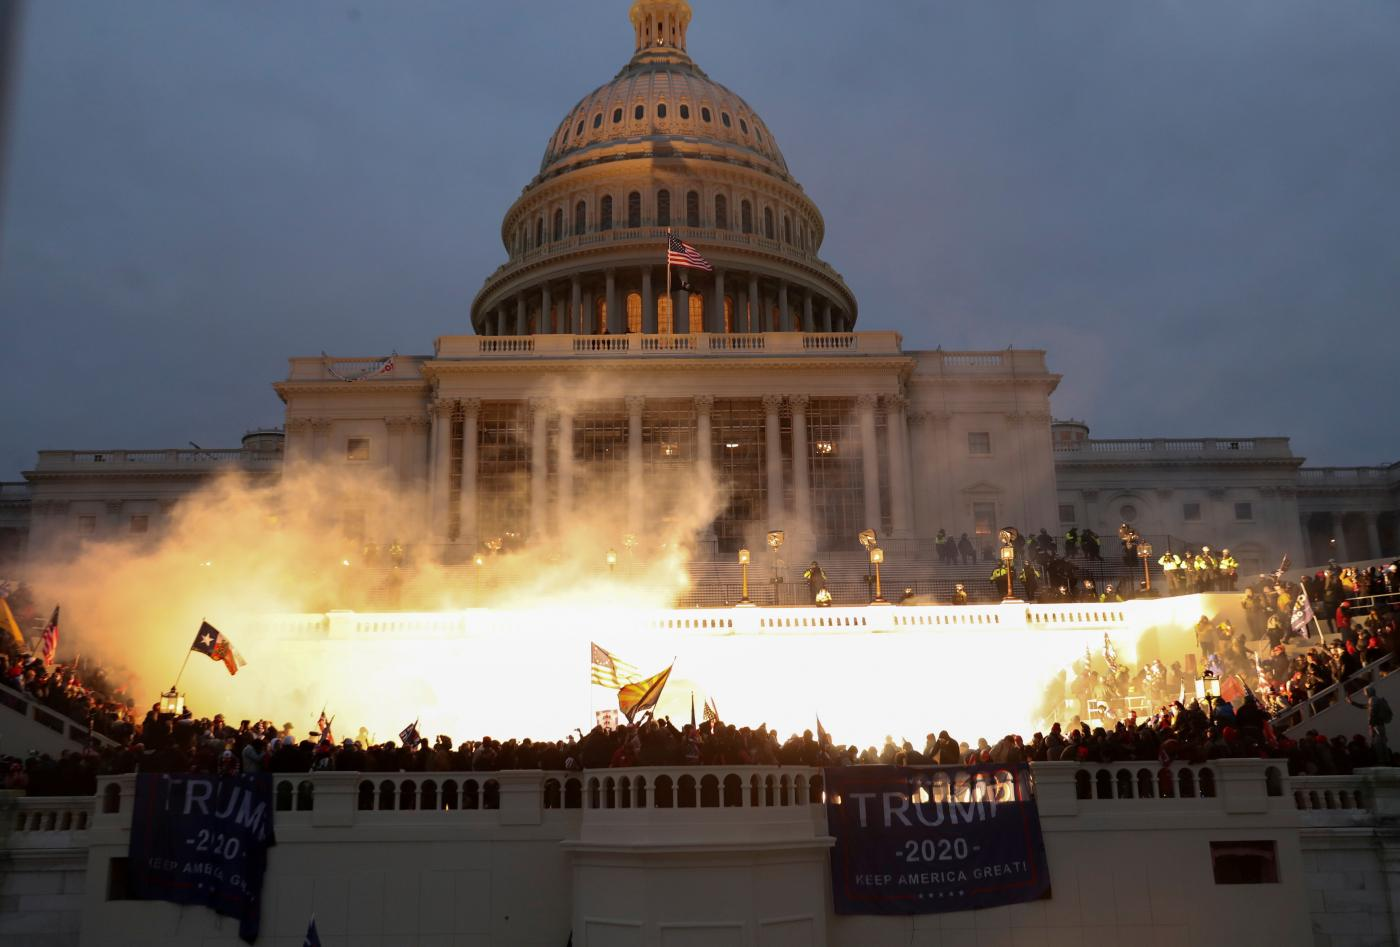 Capitol Building, January 6, 2021